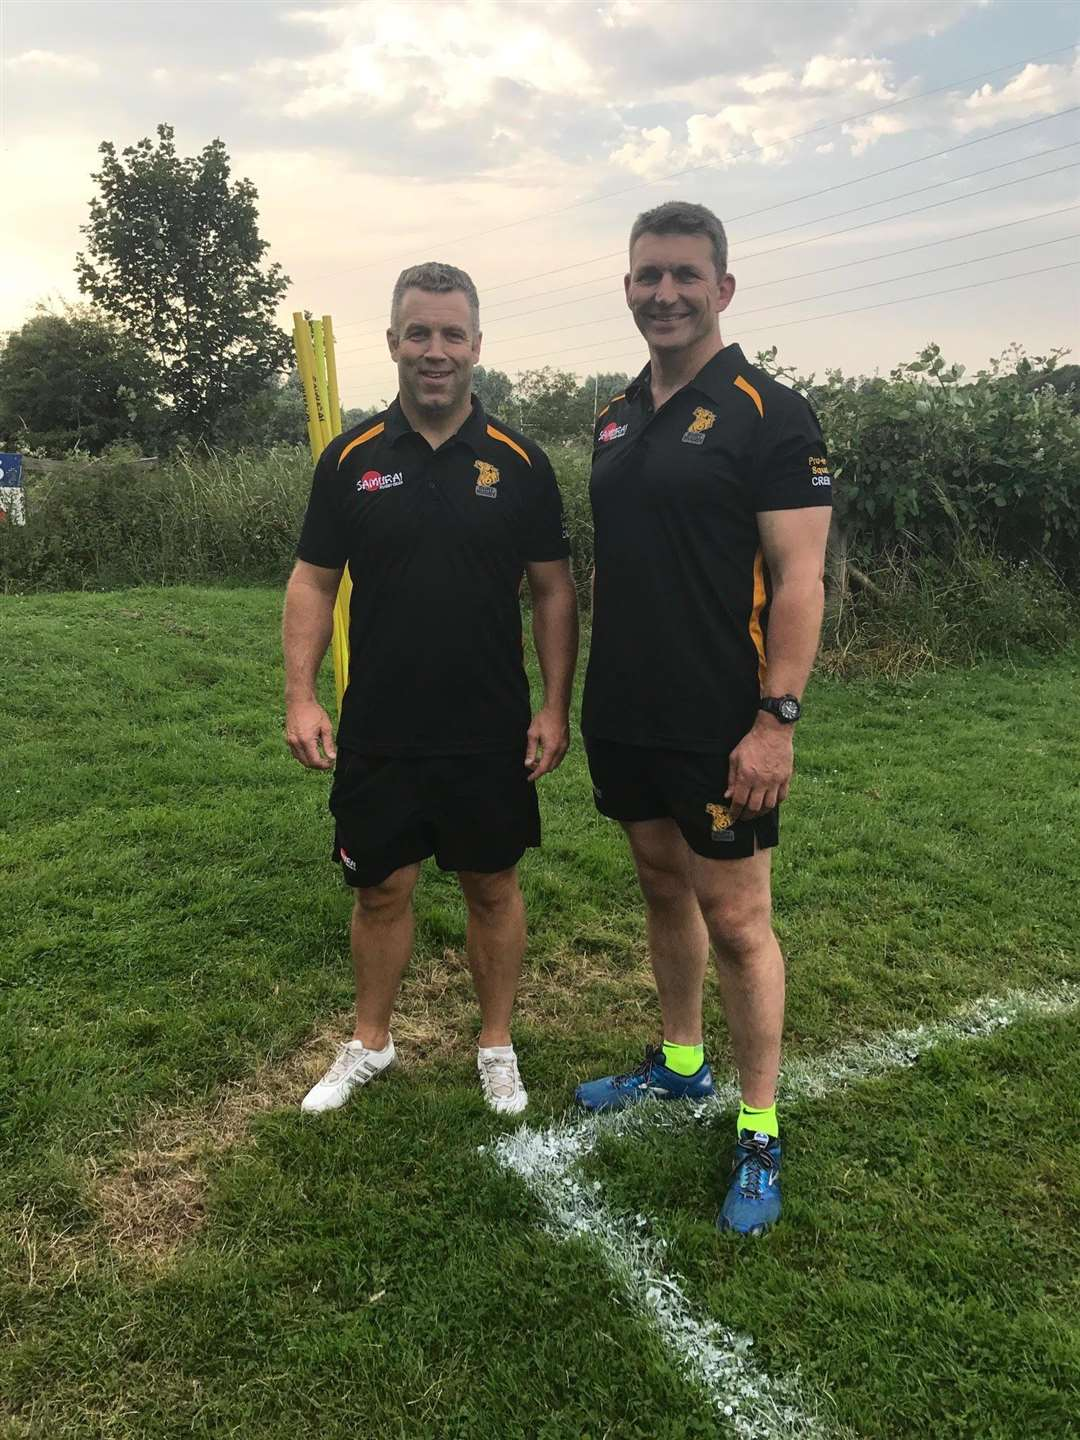 Kevin Maggs (Director of Rugby) and Howard Parr (Forwards set-piece coach) at Bury St Edmunds RUFC at pre-season training in July. (5186226)